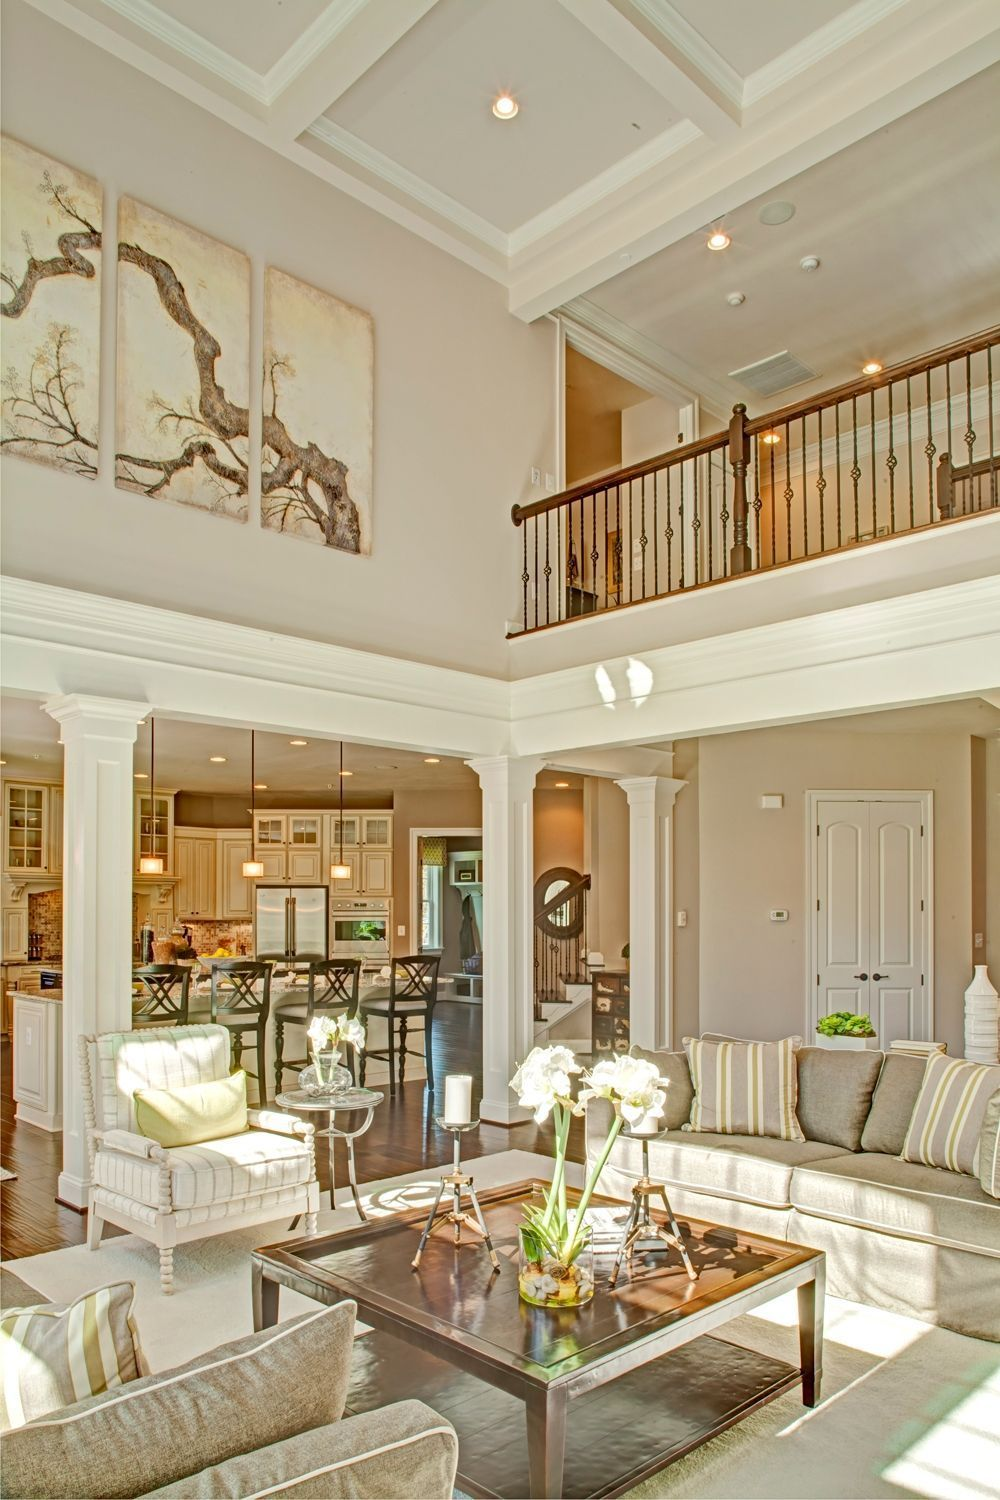 Two Story Fireplace Design Ideas Bathroomfurniturezone 2 Story